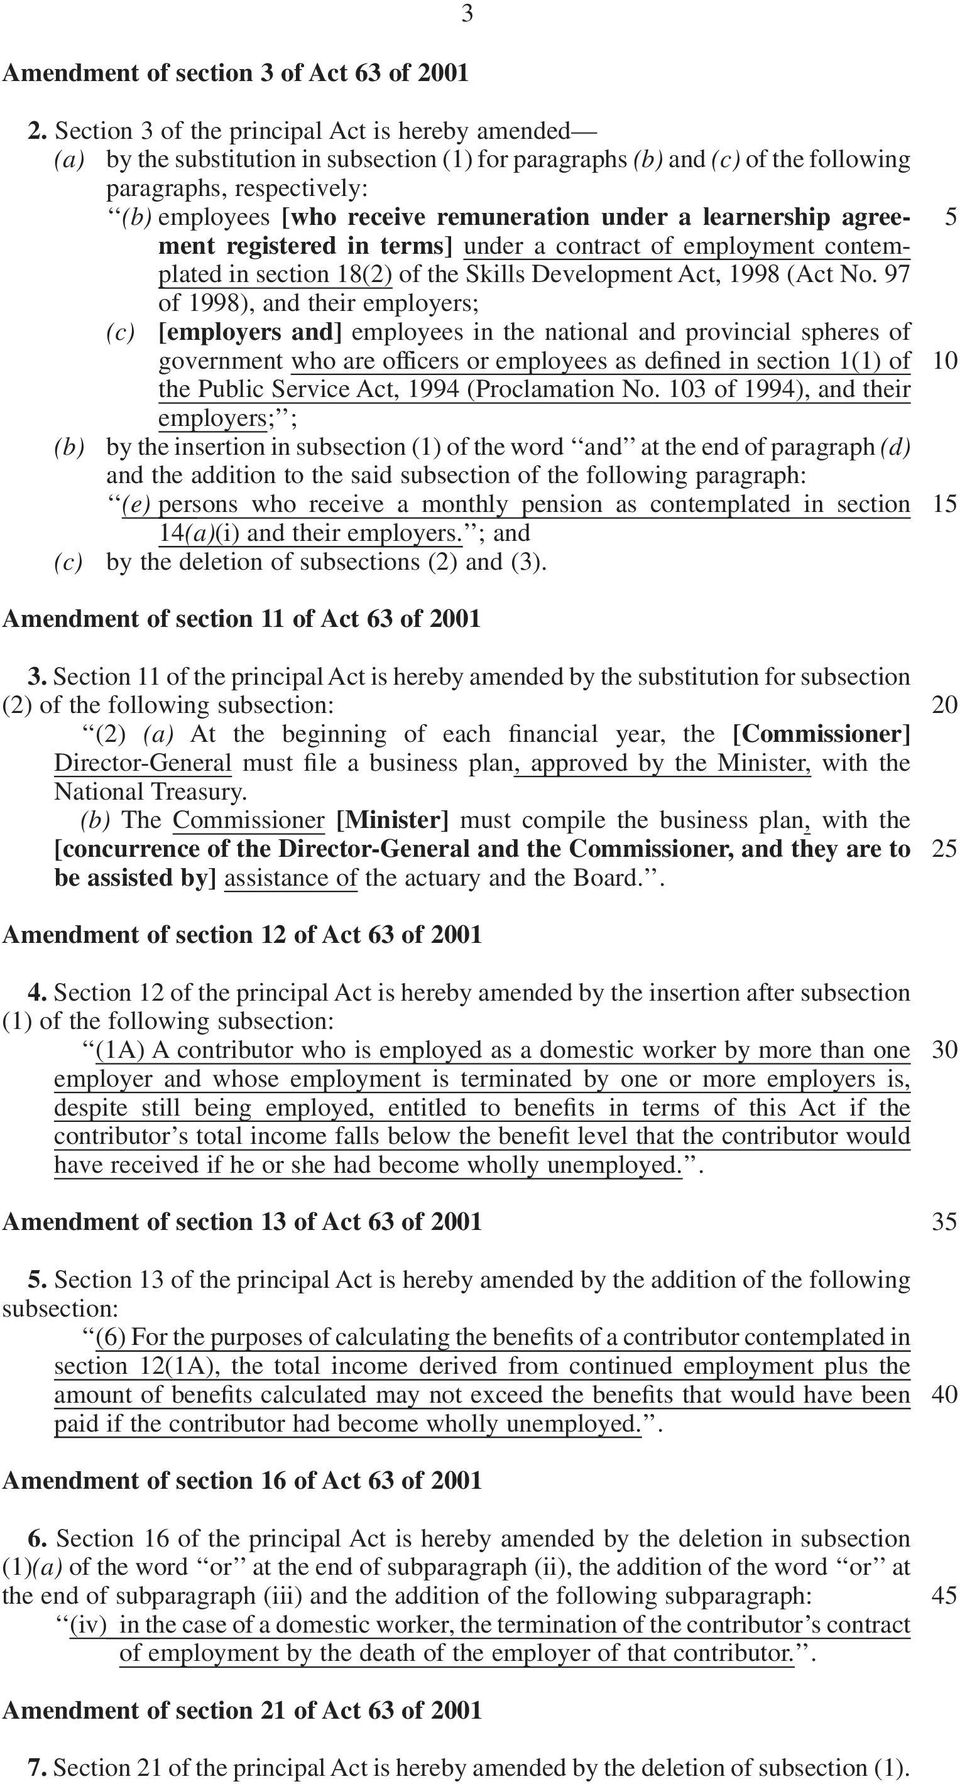 remuneration under a learnership agreement registered in terms] under a contract of employment contemplated in section 18(2) of the Skills Development Act, 1998 (Act No.